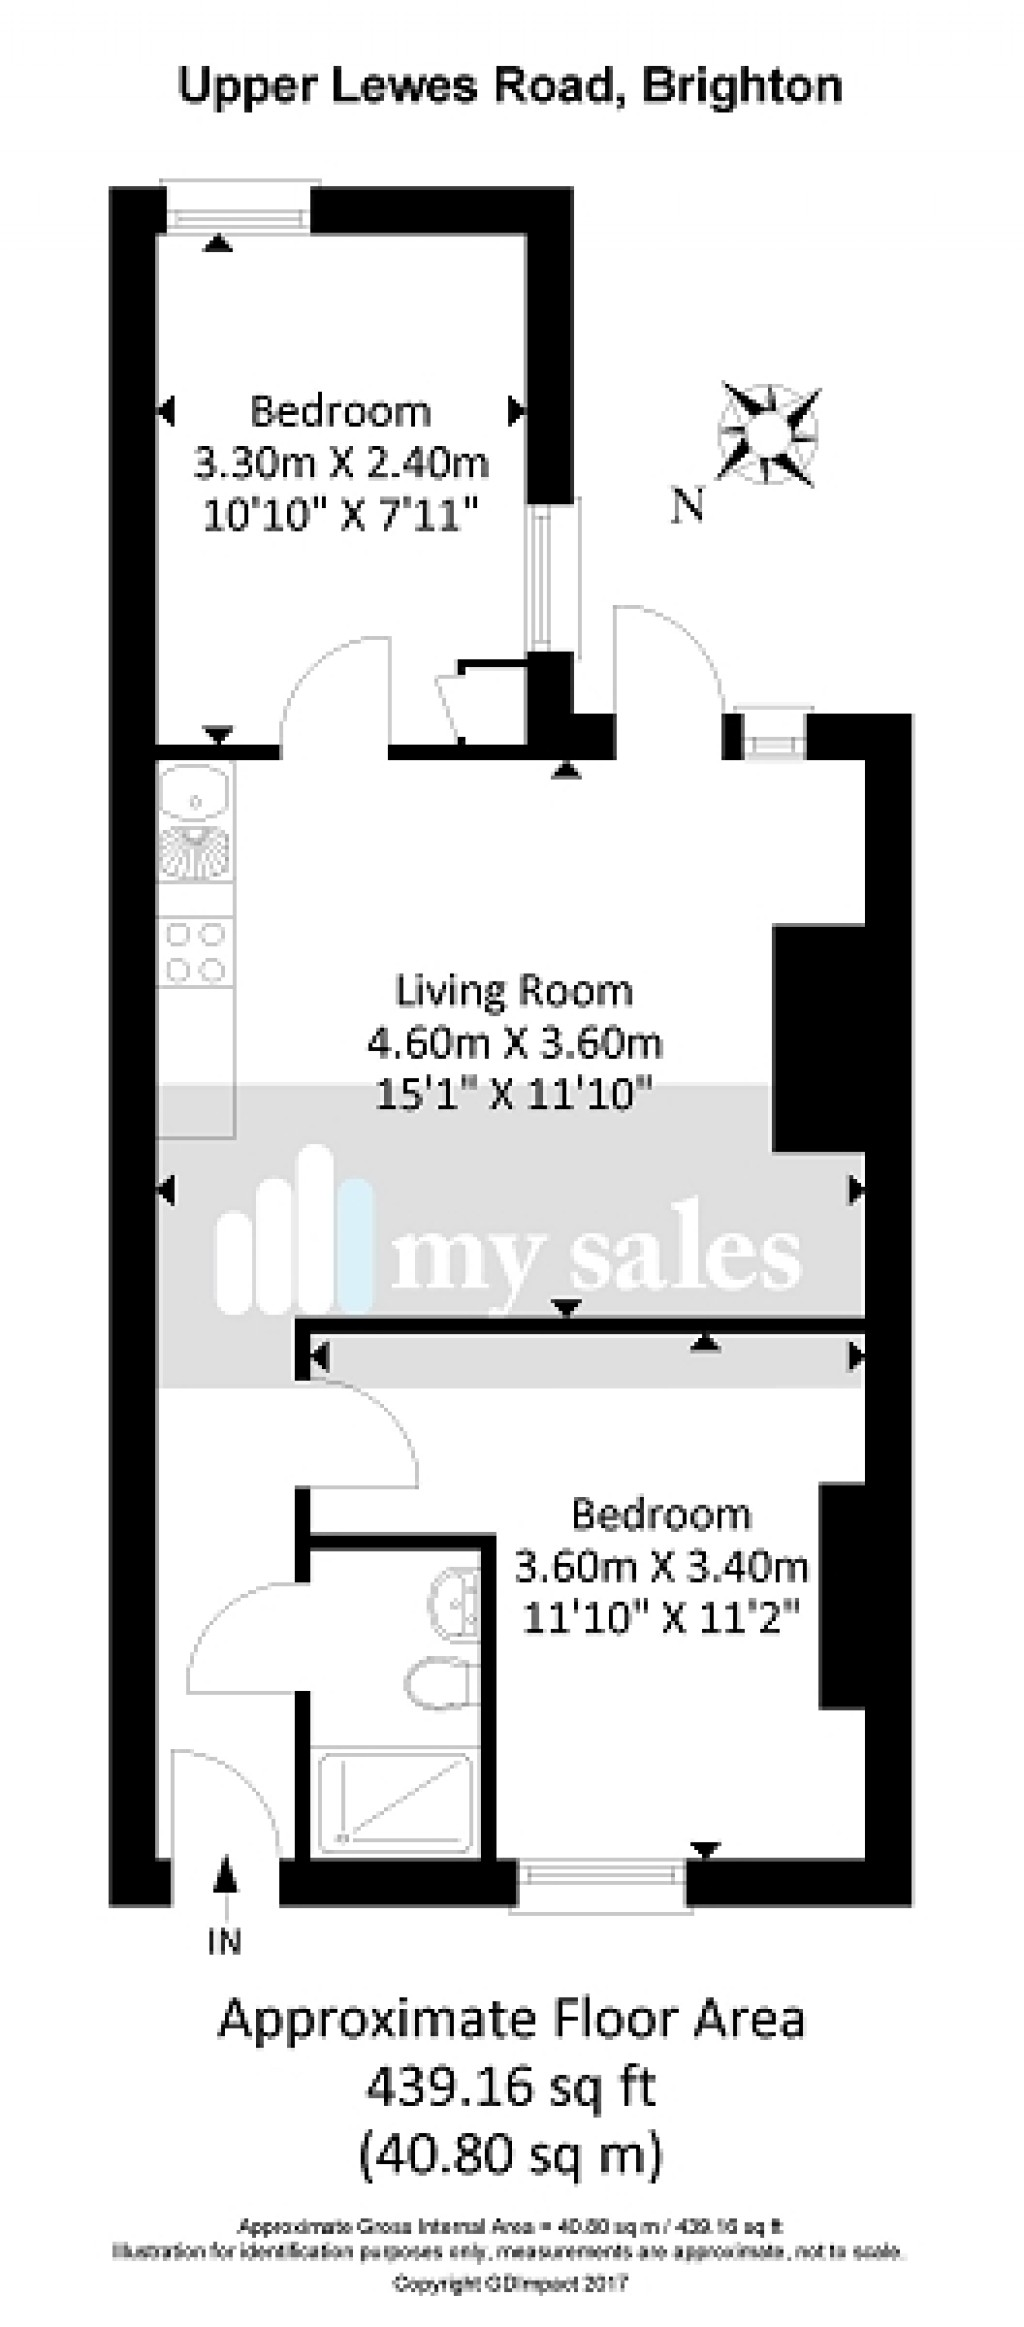 Floorplans For Upper Lewes Road, Brighton, East Sussex. BN2 3FD